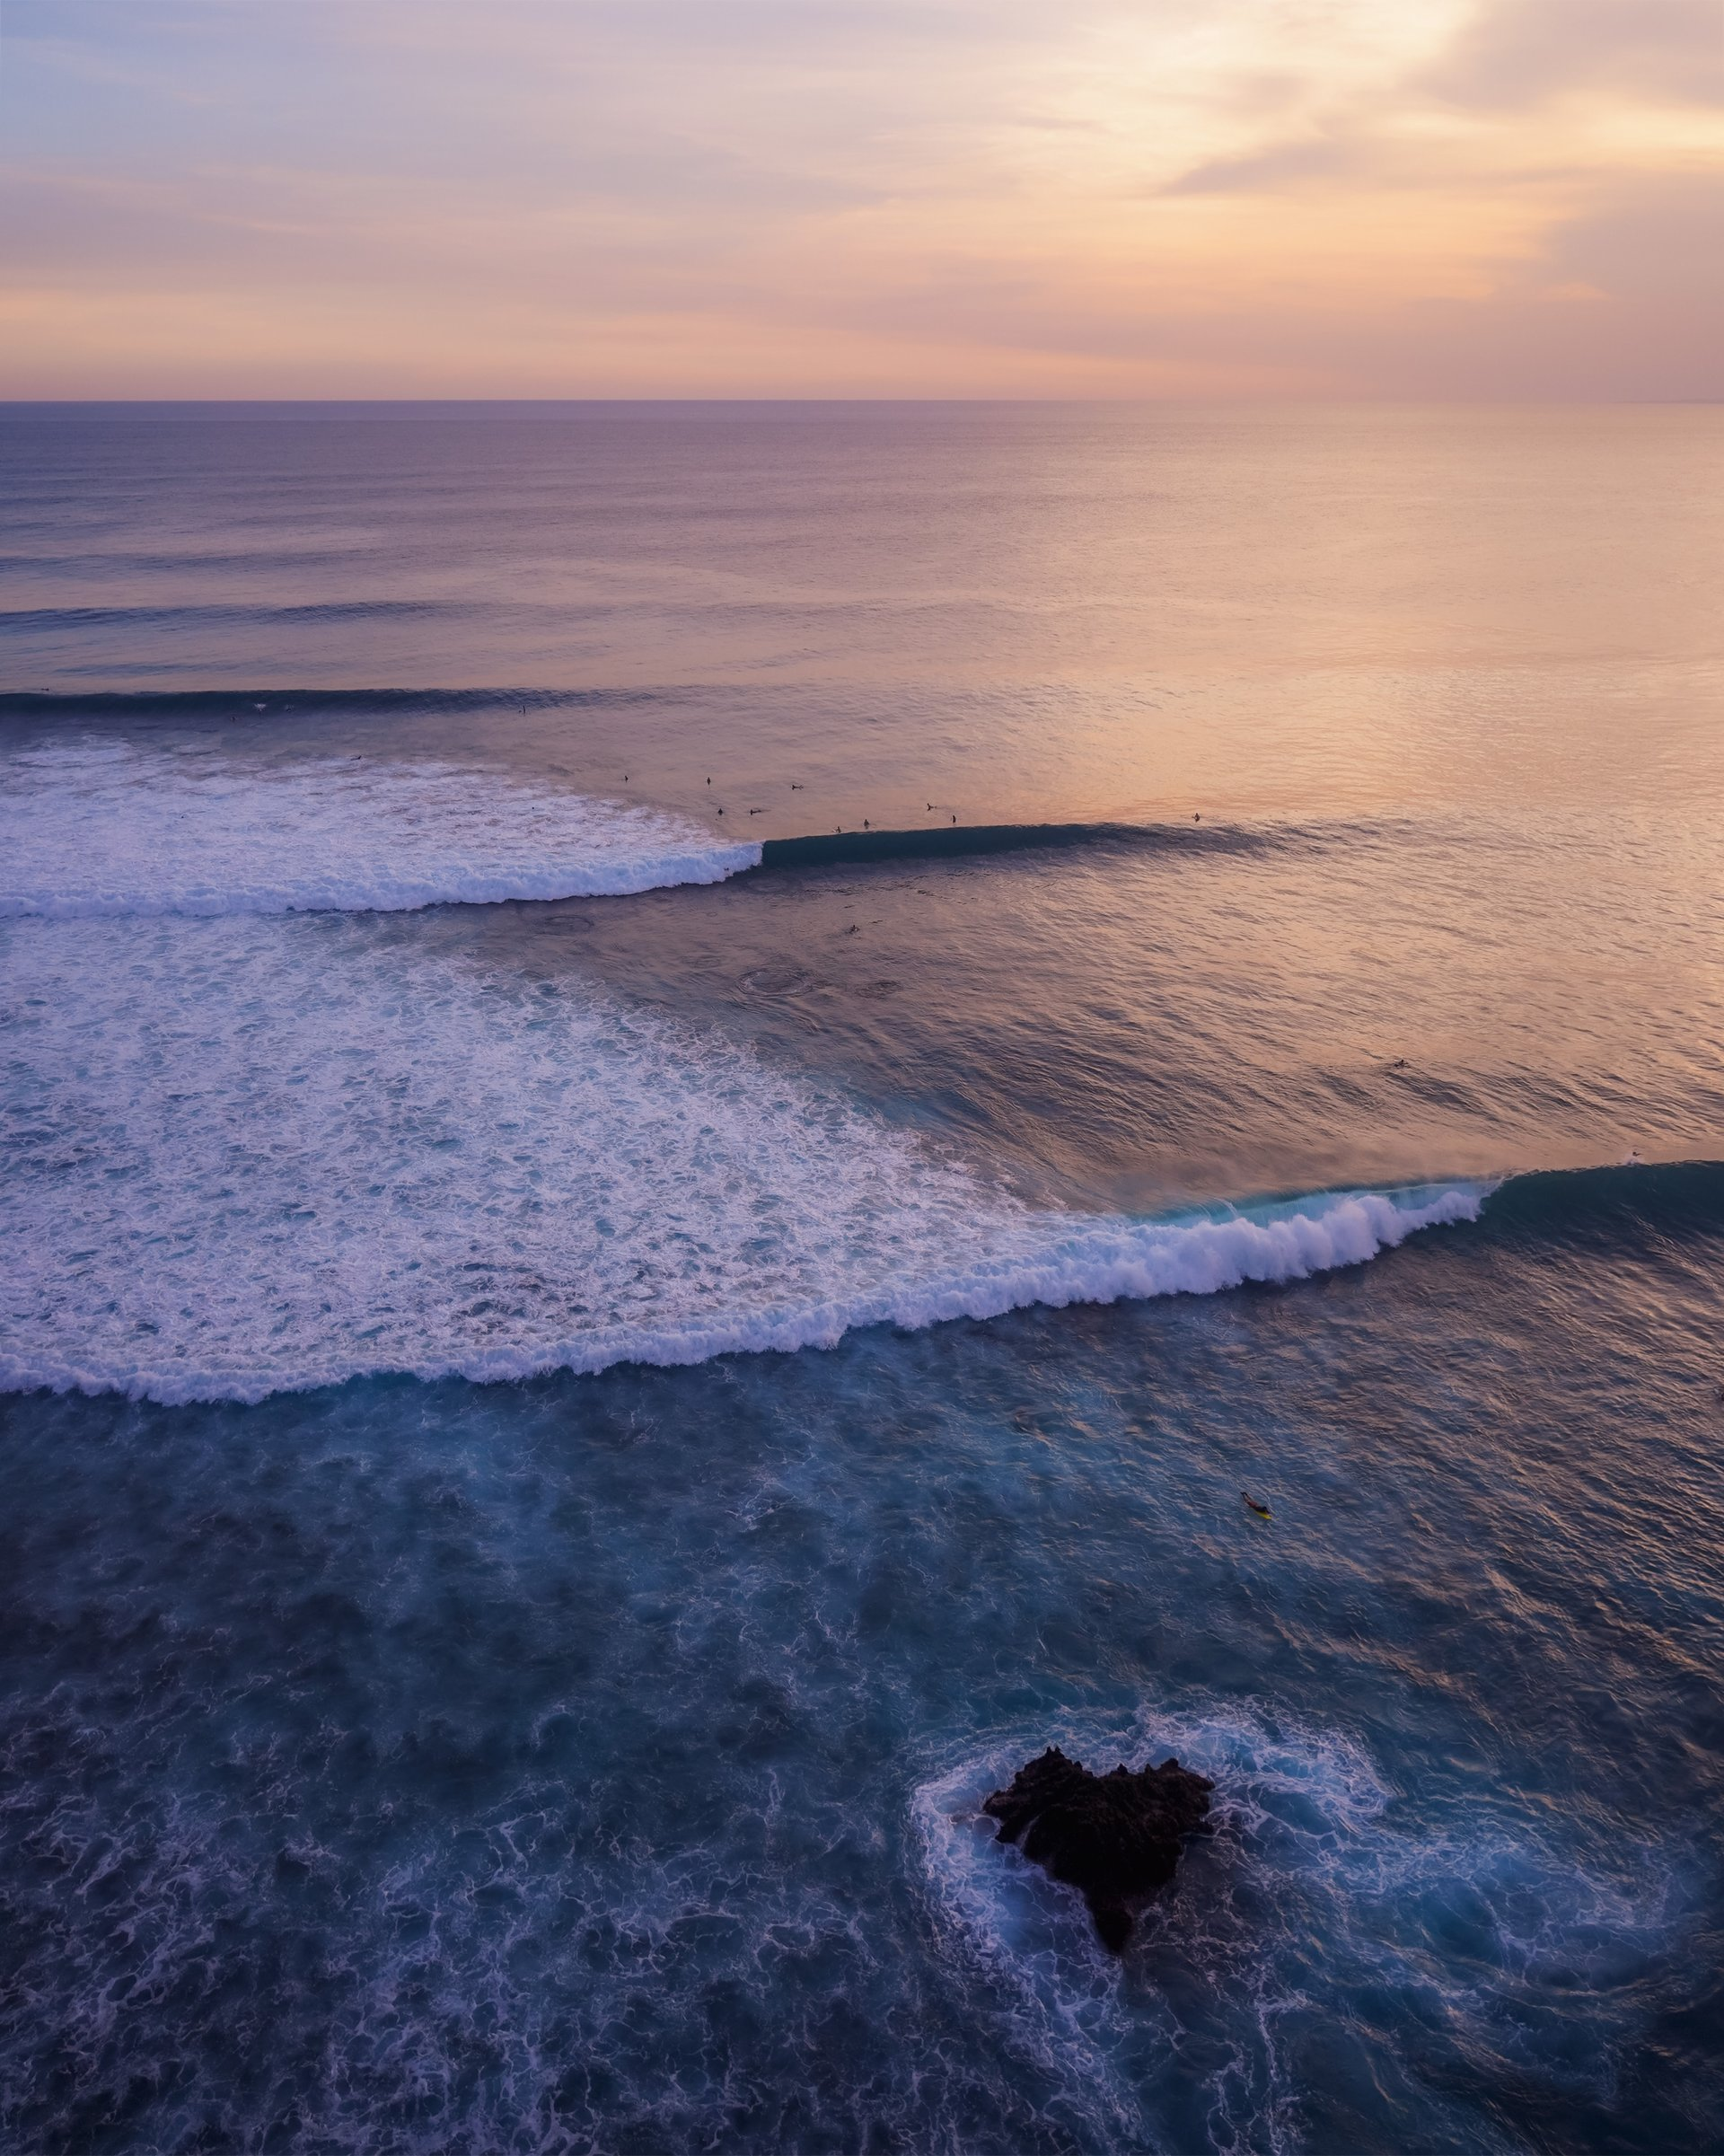 Maikel Kersbergen's photo of Uluwatu